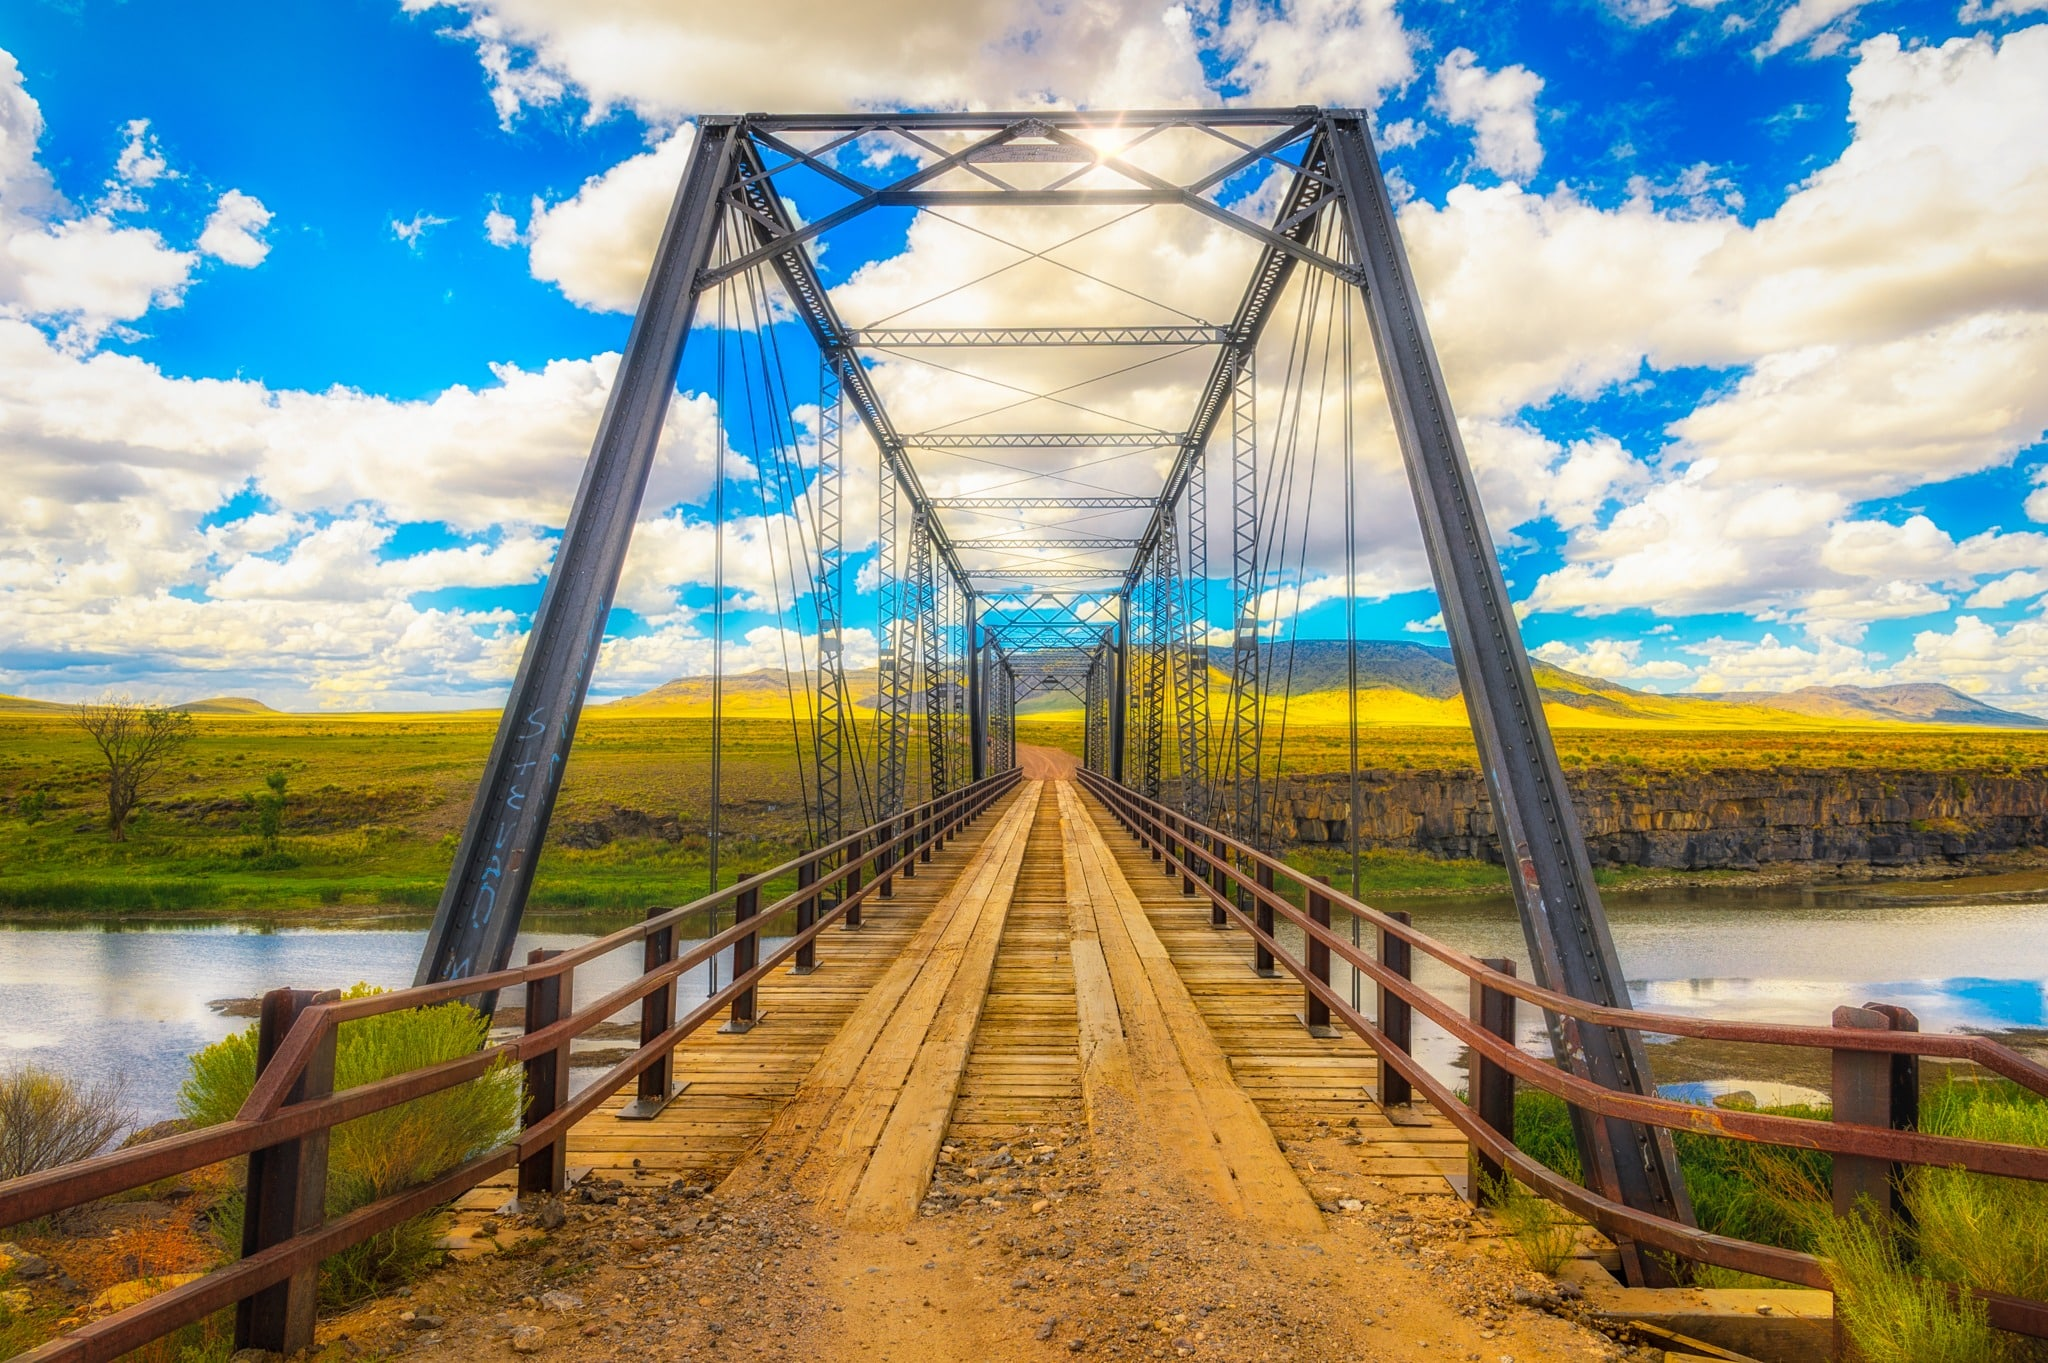 This is a view through the Lobato Bridge (Costillo Crossing Bridge) on the Rio Grande River, about 13 miles east of Antonito, Colorado, on Conejos County Road G. The Lobato Bridge is the southernmost bridge across the Rio Grande River in Colorado. This bridge is classified as a two-span Thacher through truss bridge.